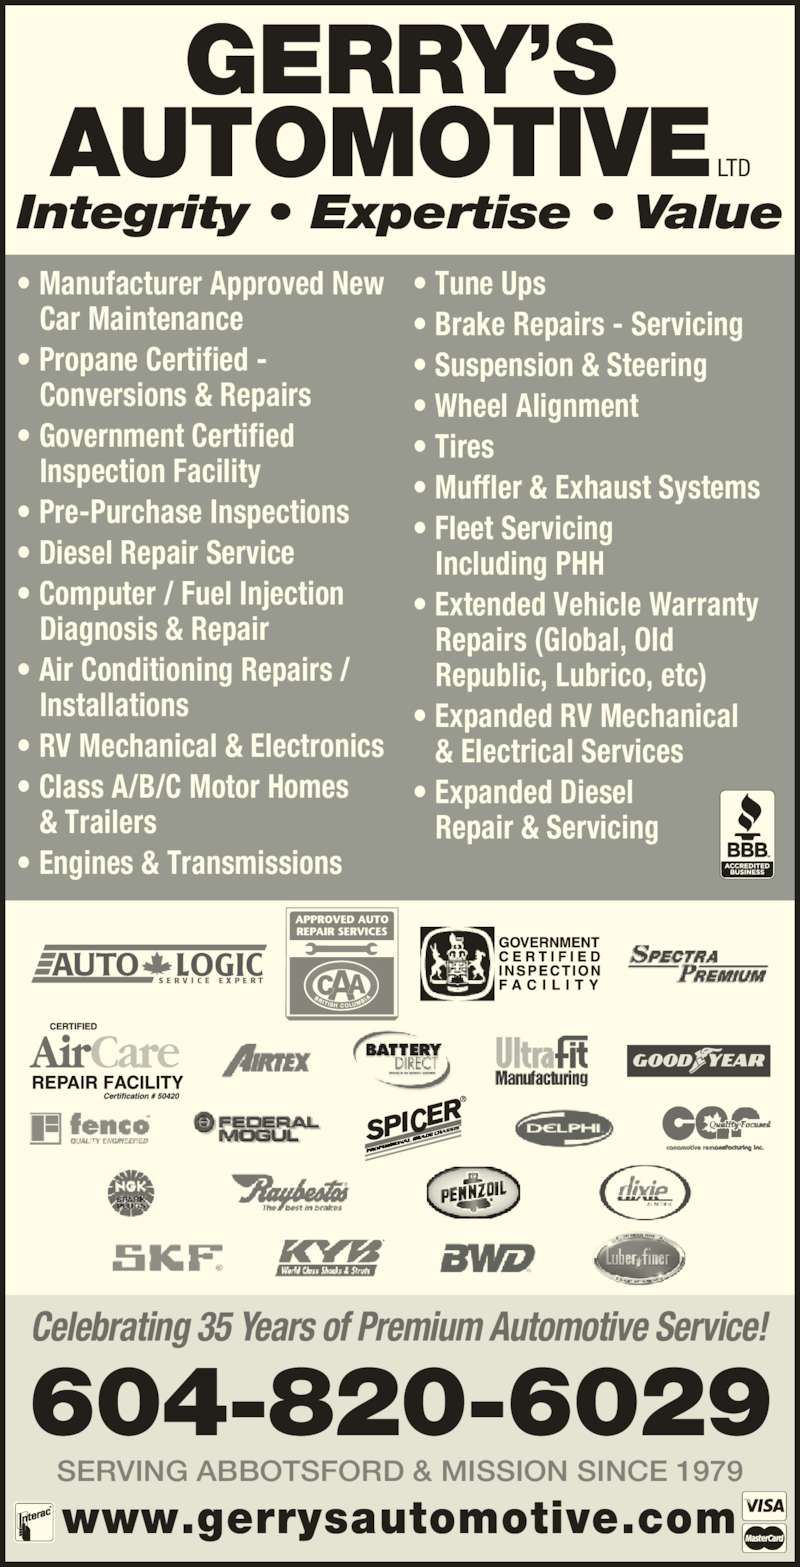 Gerry's Automotive Ltd (604-826-0519) - Display Ad - • Wheel Alignment • Tires • Muffler & Exhaust Systems • Fleet Servicing  Including PHH • Extended Vehicle Warranty  Repairs (Global, Old  Republic, Lubrico, etc) • Expanded RV Mechanical  & Electrical Services • Expanded Diesel Repair & Servicing GERRY'S AUTOMOTIVE LTD www.gerrysautomotive.com Celebrating 35 Years of Premium Automotive Service! SERVING ABBOTSFORD & MISSION SINCE 1979 604-820-6029 Integrity • Expertise • Value • Manufacturer Approved New  Car Maintenance • Propane Certified -  Conversions & Repairs • Government Certified  Inspection Facility • Pre-Purchase Inspections • Diesel Repair Service • Computer / Fuel Injection  Diagnosis & Repair • Air Conditioning Repairs /  Installations • RV Mechanical & Electronics • Class A/B/C Motor Homes  & Trailers • Engines & Transmissions • Tune Ups • Brake Repairs - Servicing • Suspension & Steering